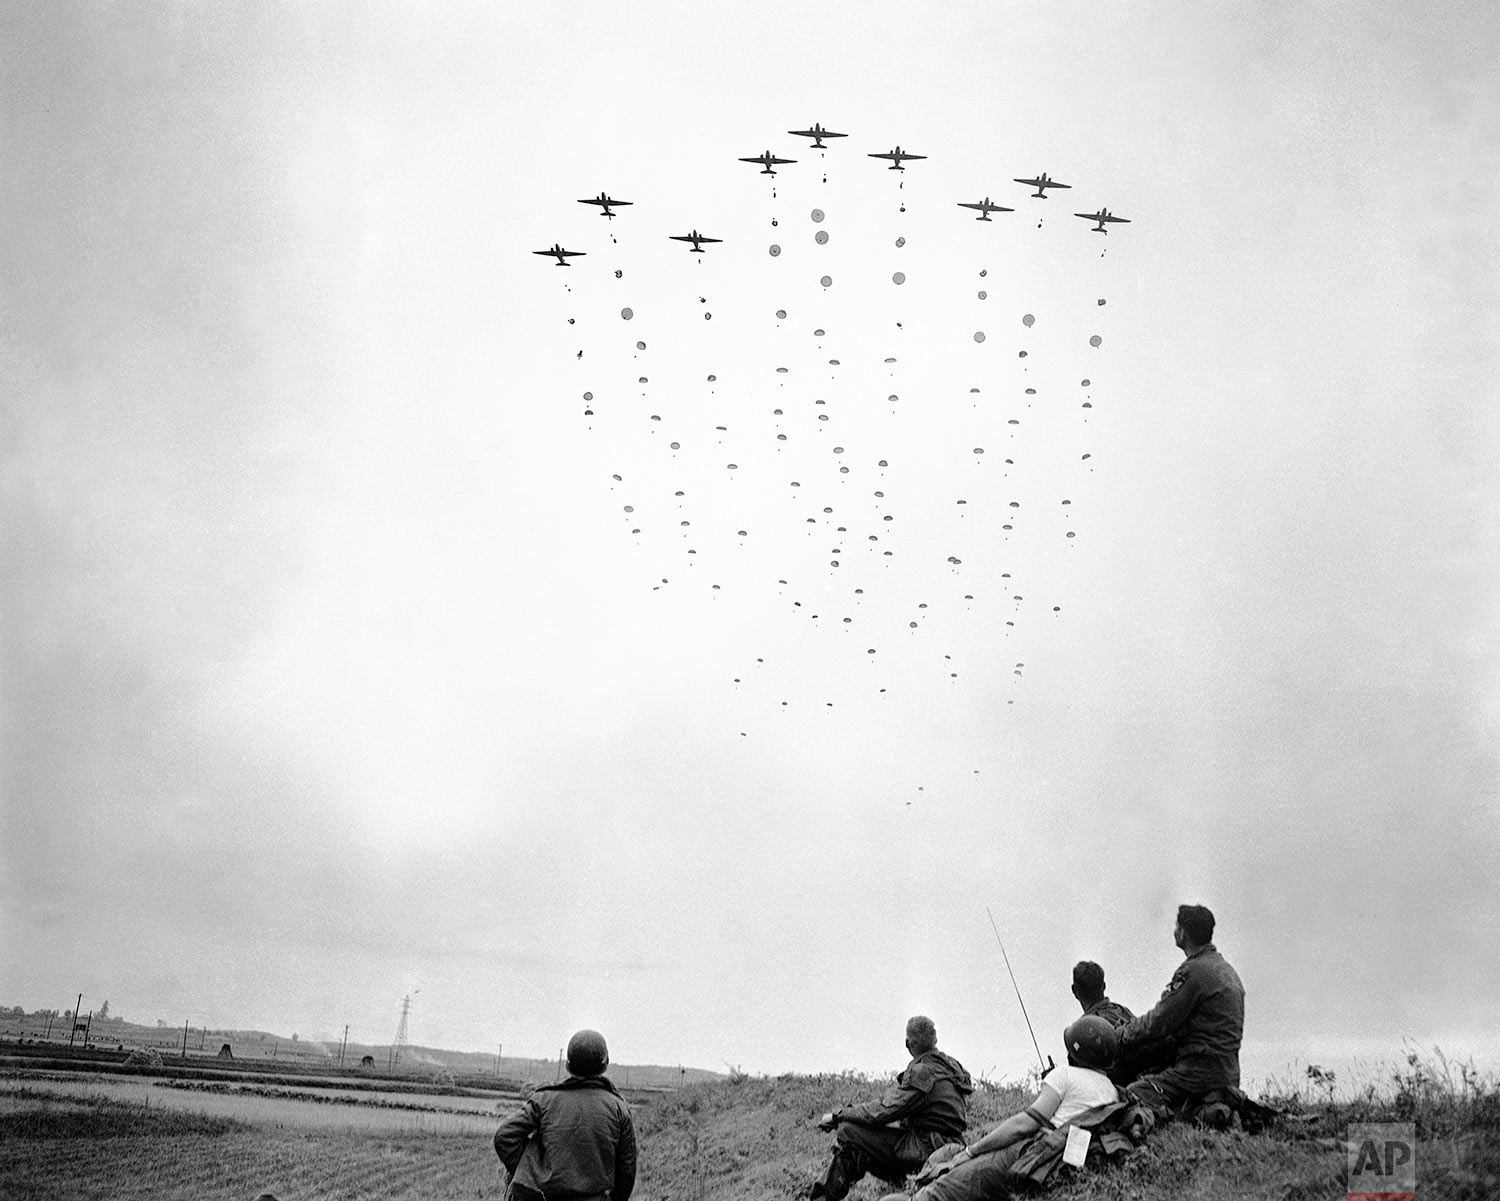 U.S. paratroopers leave their planes in a mass drop behind enemy lines in the Sunchon area of North Korea on Oct. 25, 1950 during an operation designed to block the escape route of the retreating Chinese and to attempt to rescue American prisoners. Members of an advance party (foreground) watch the landing. (AP Photo/Max Desfor)